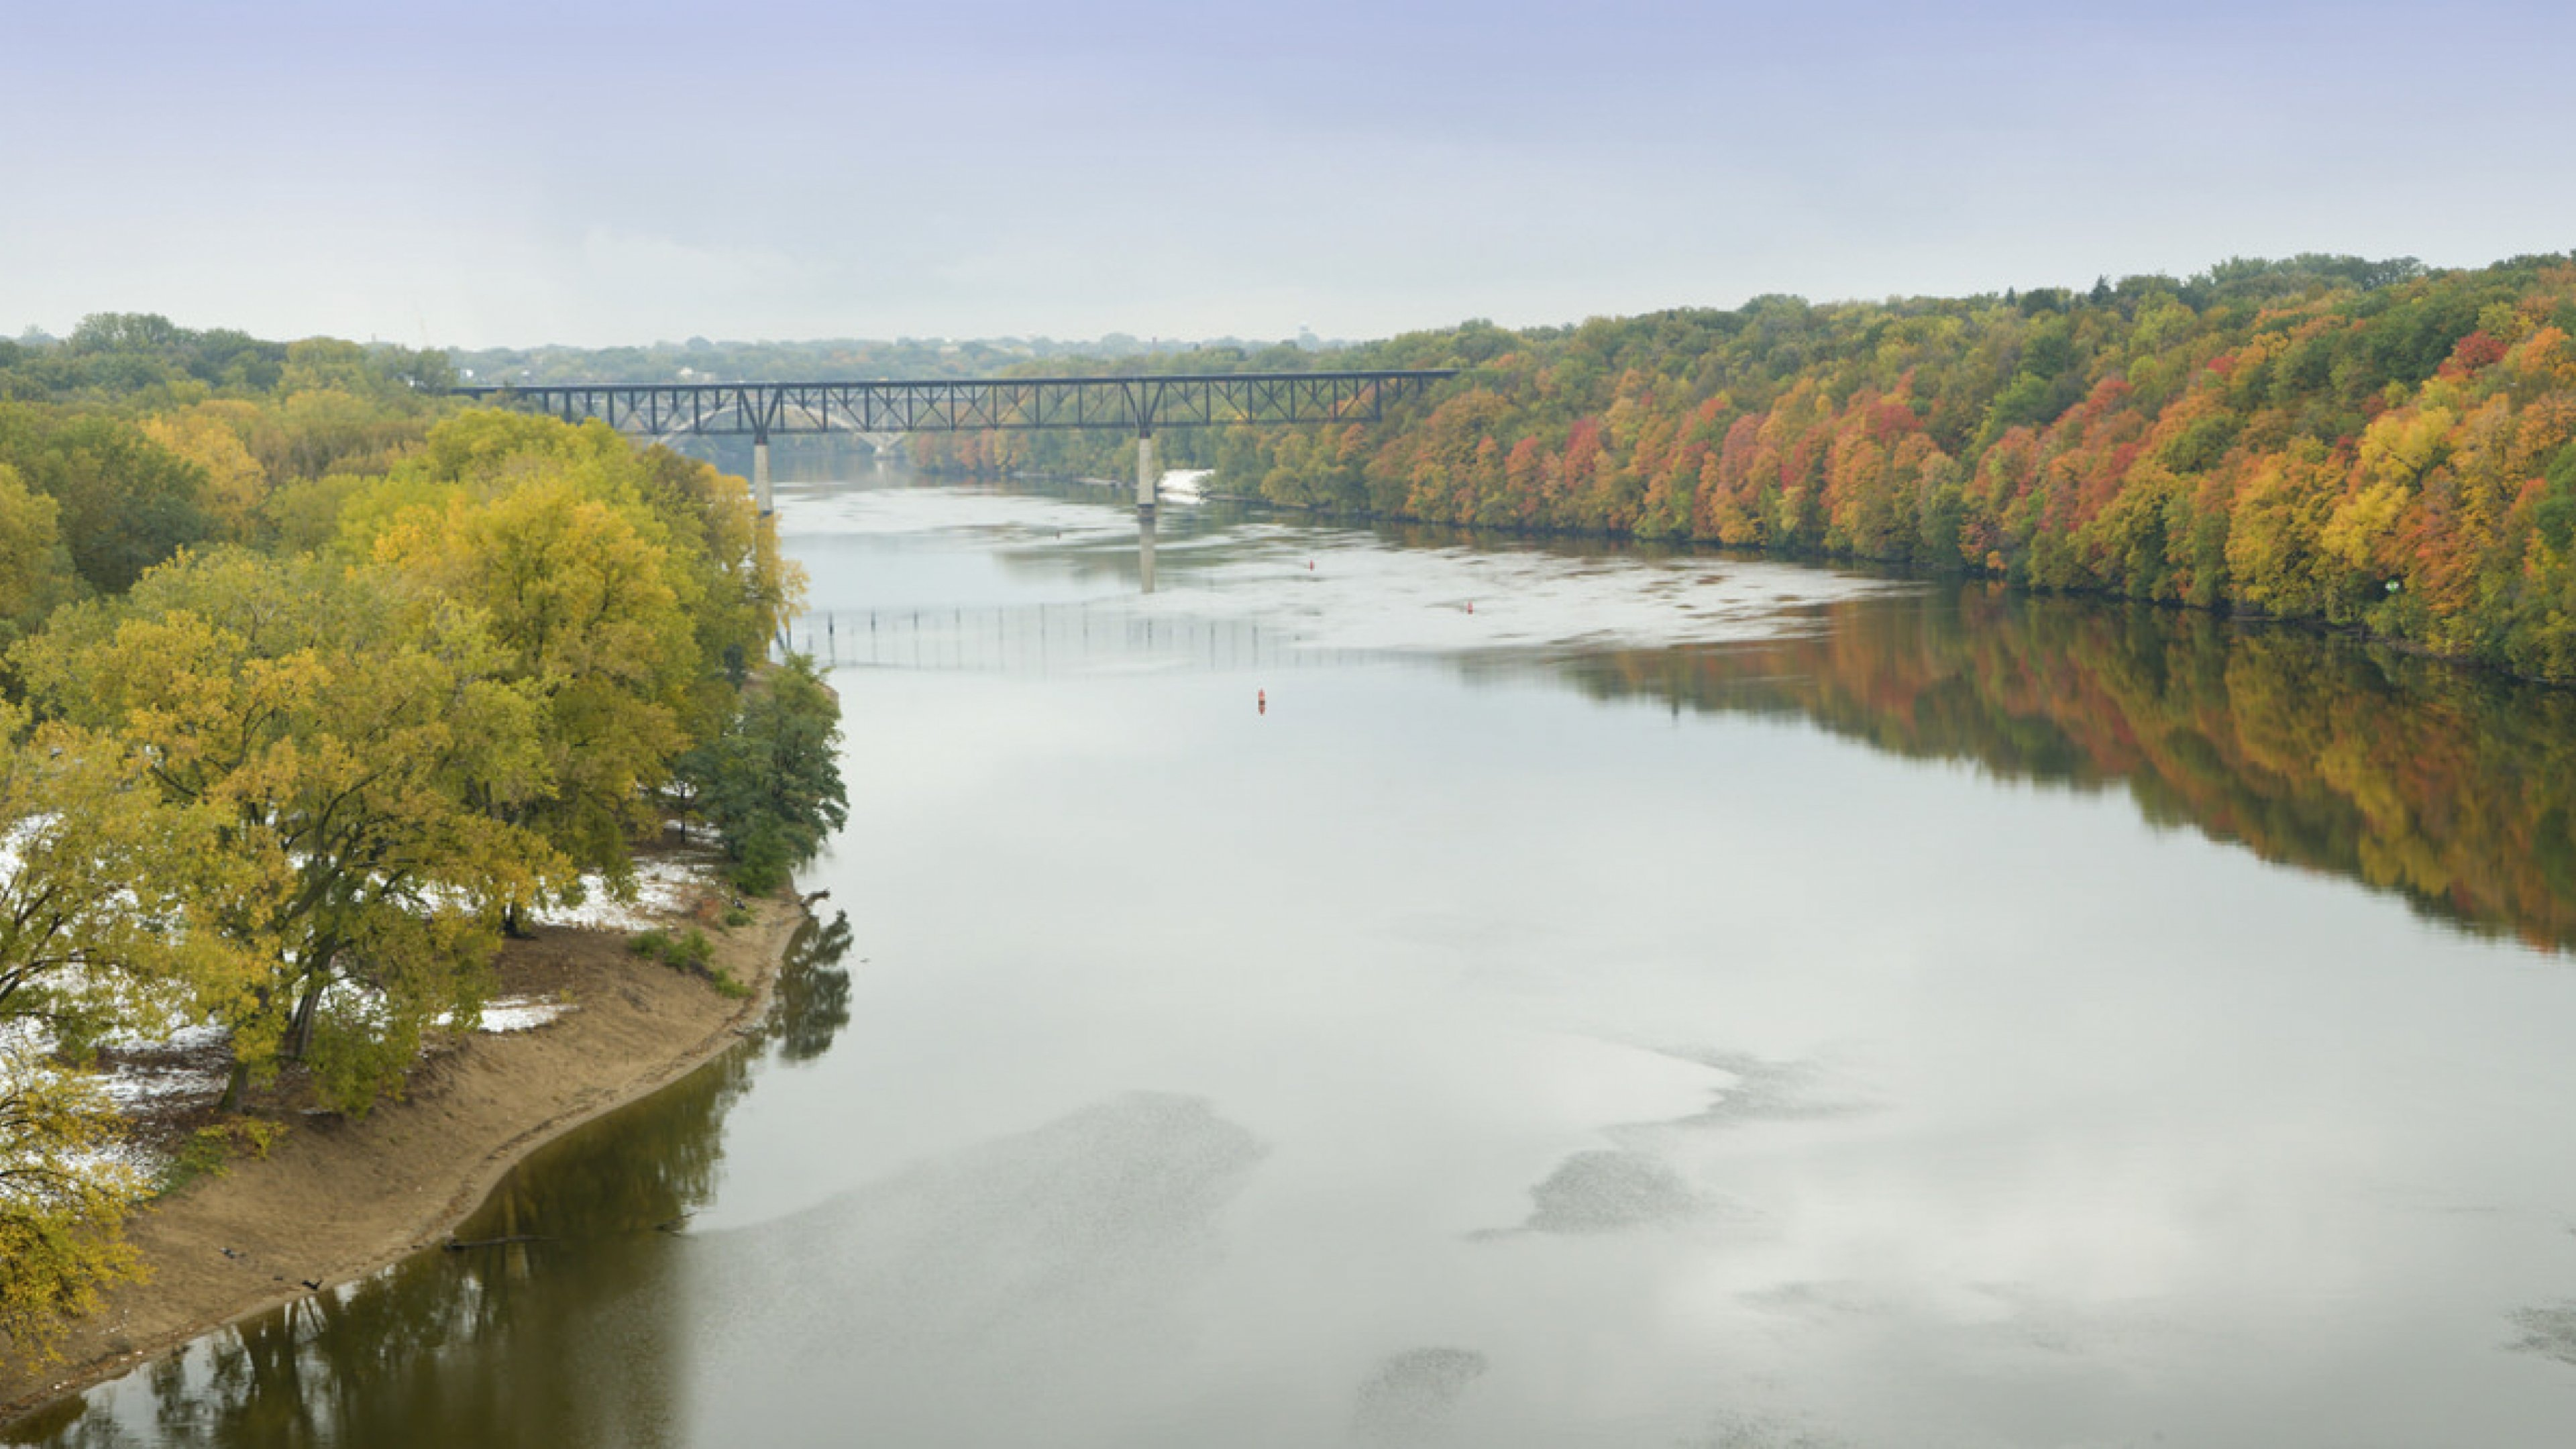 Some yellows and oranges of fall foliage in a green forest lining the banks of the Mississippi River with a bridge in the horizon